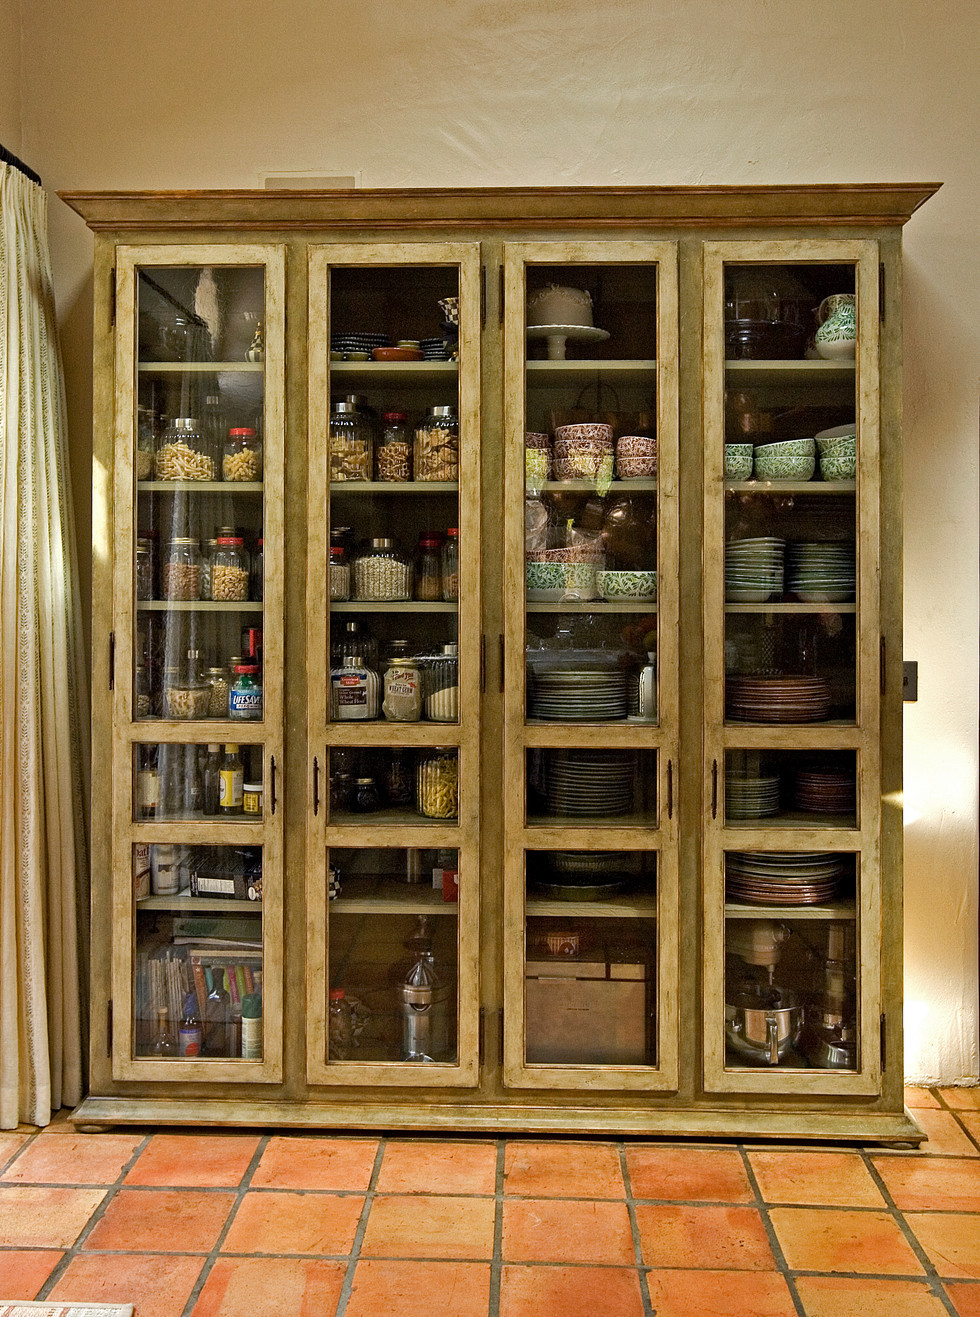 Serra Retreat Pantry Cabinet.jpg